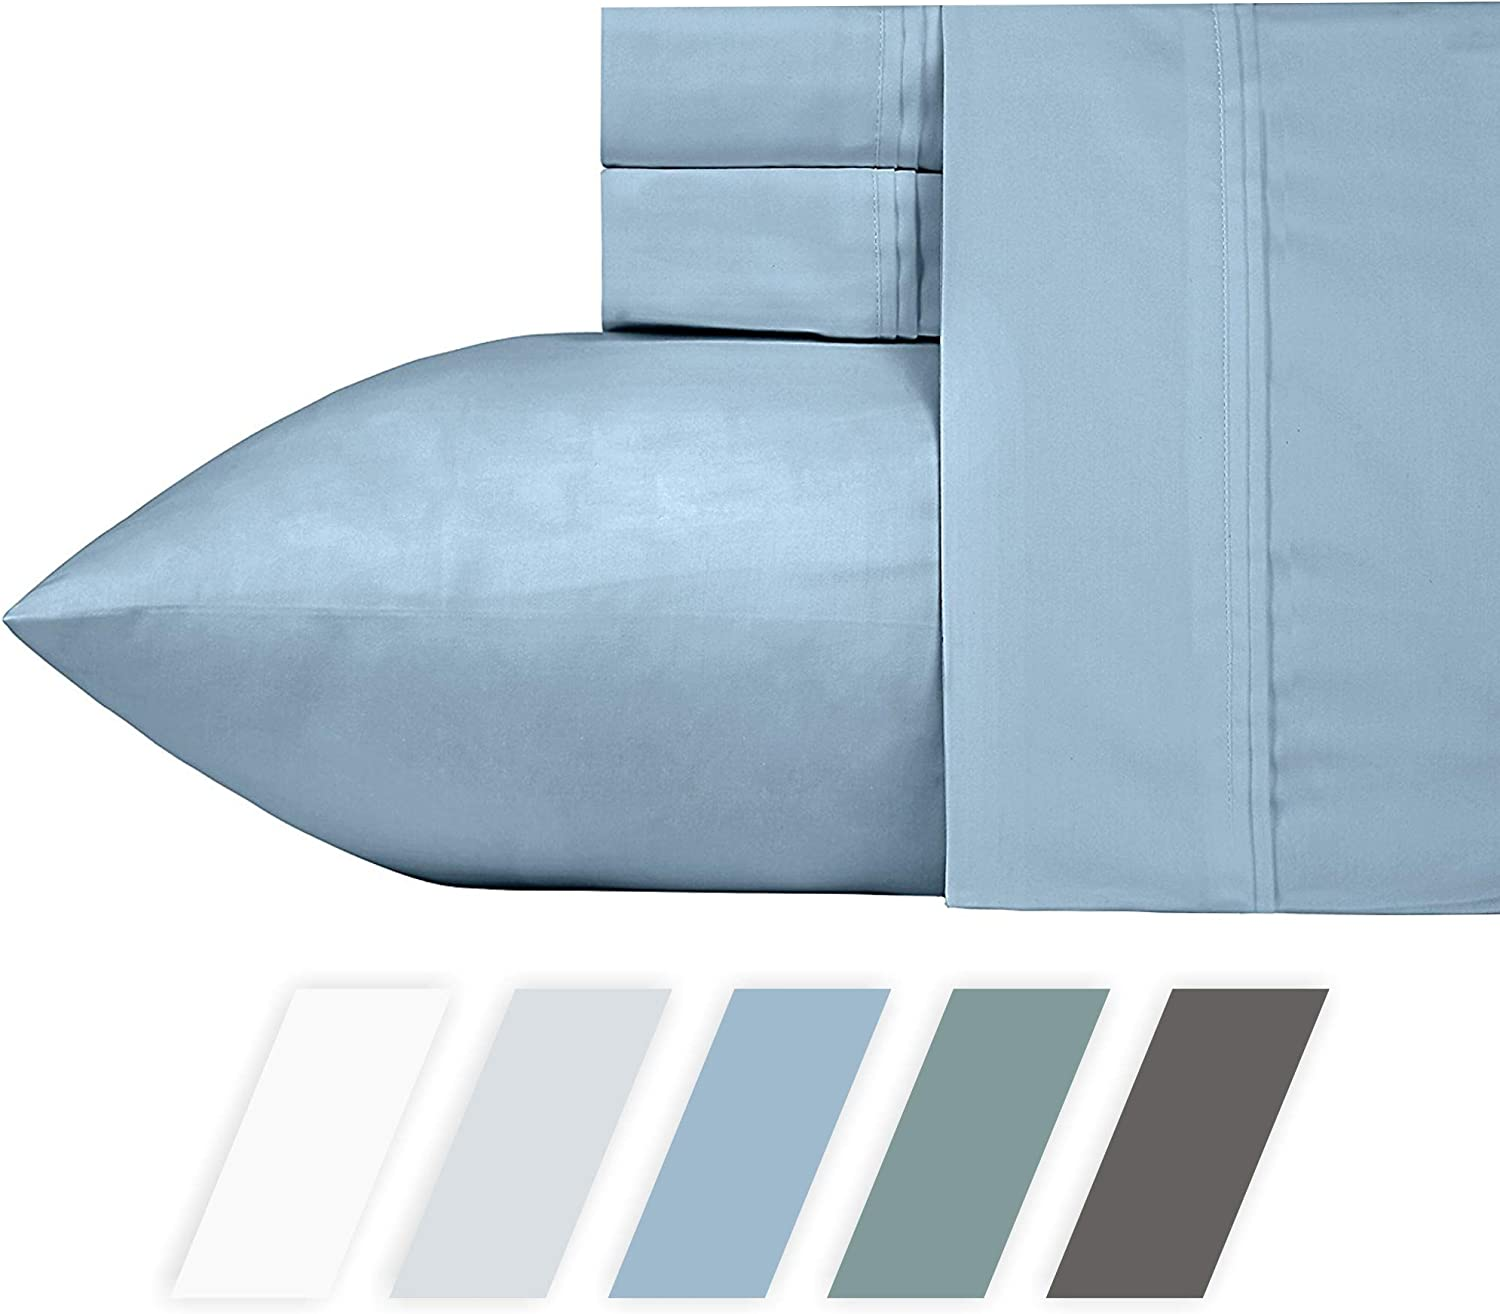 """California Design Den 700-Thread-Count 4-Piece King Size All Season Essential Cotton Blend Sheet Set in Morning bluee - Fits Upto 18"""" Deep Pocket, Silky Sateen Weave, Poly-Cotton Sheets and Pillowcases"""